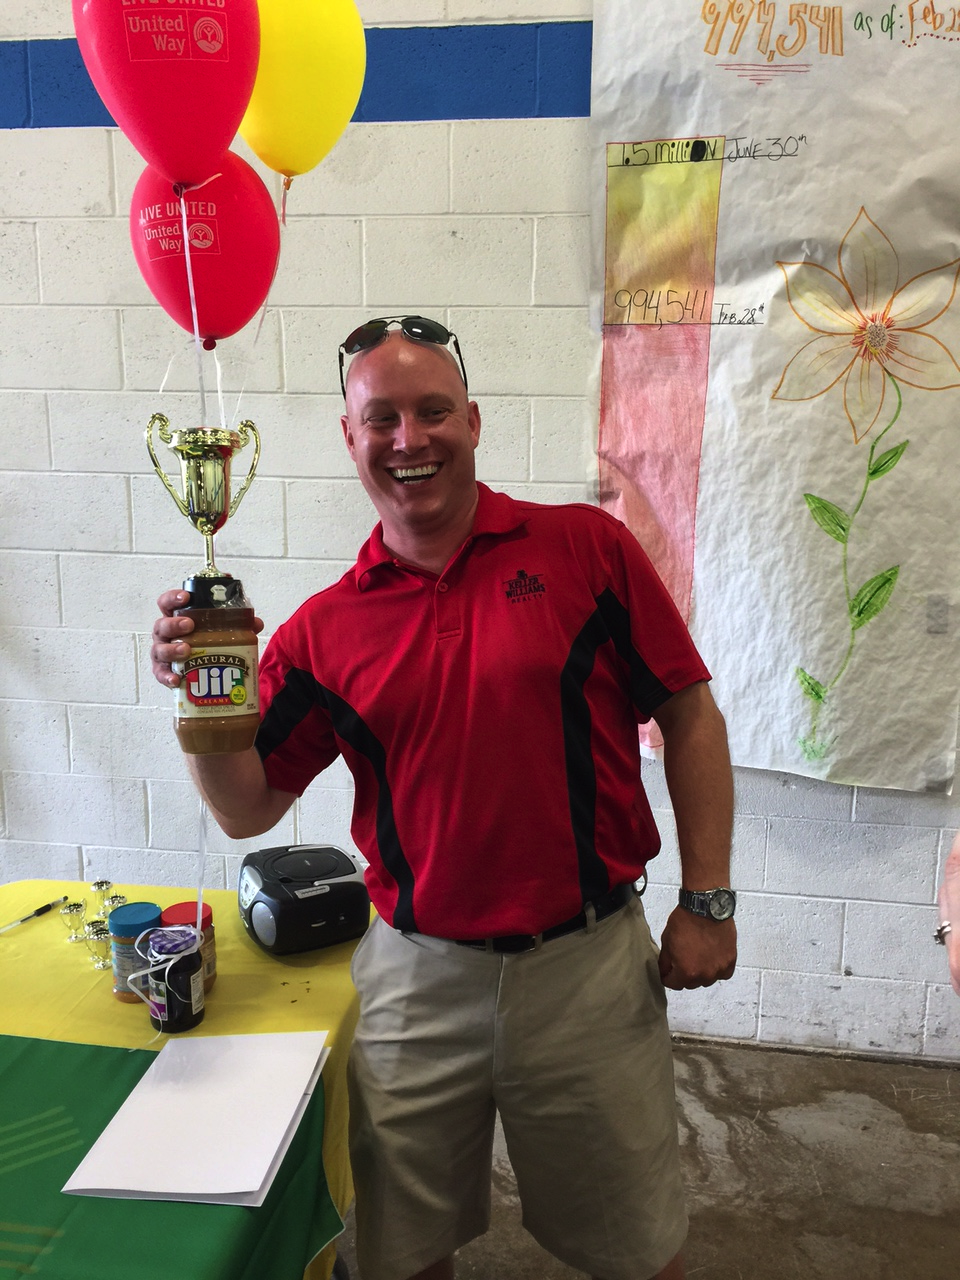 The 694 lbs. of PB&J Matt Gorman and his team collected & donated were enough to win the Peanut Butter Cup as the event's top donor.